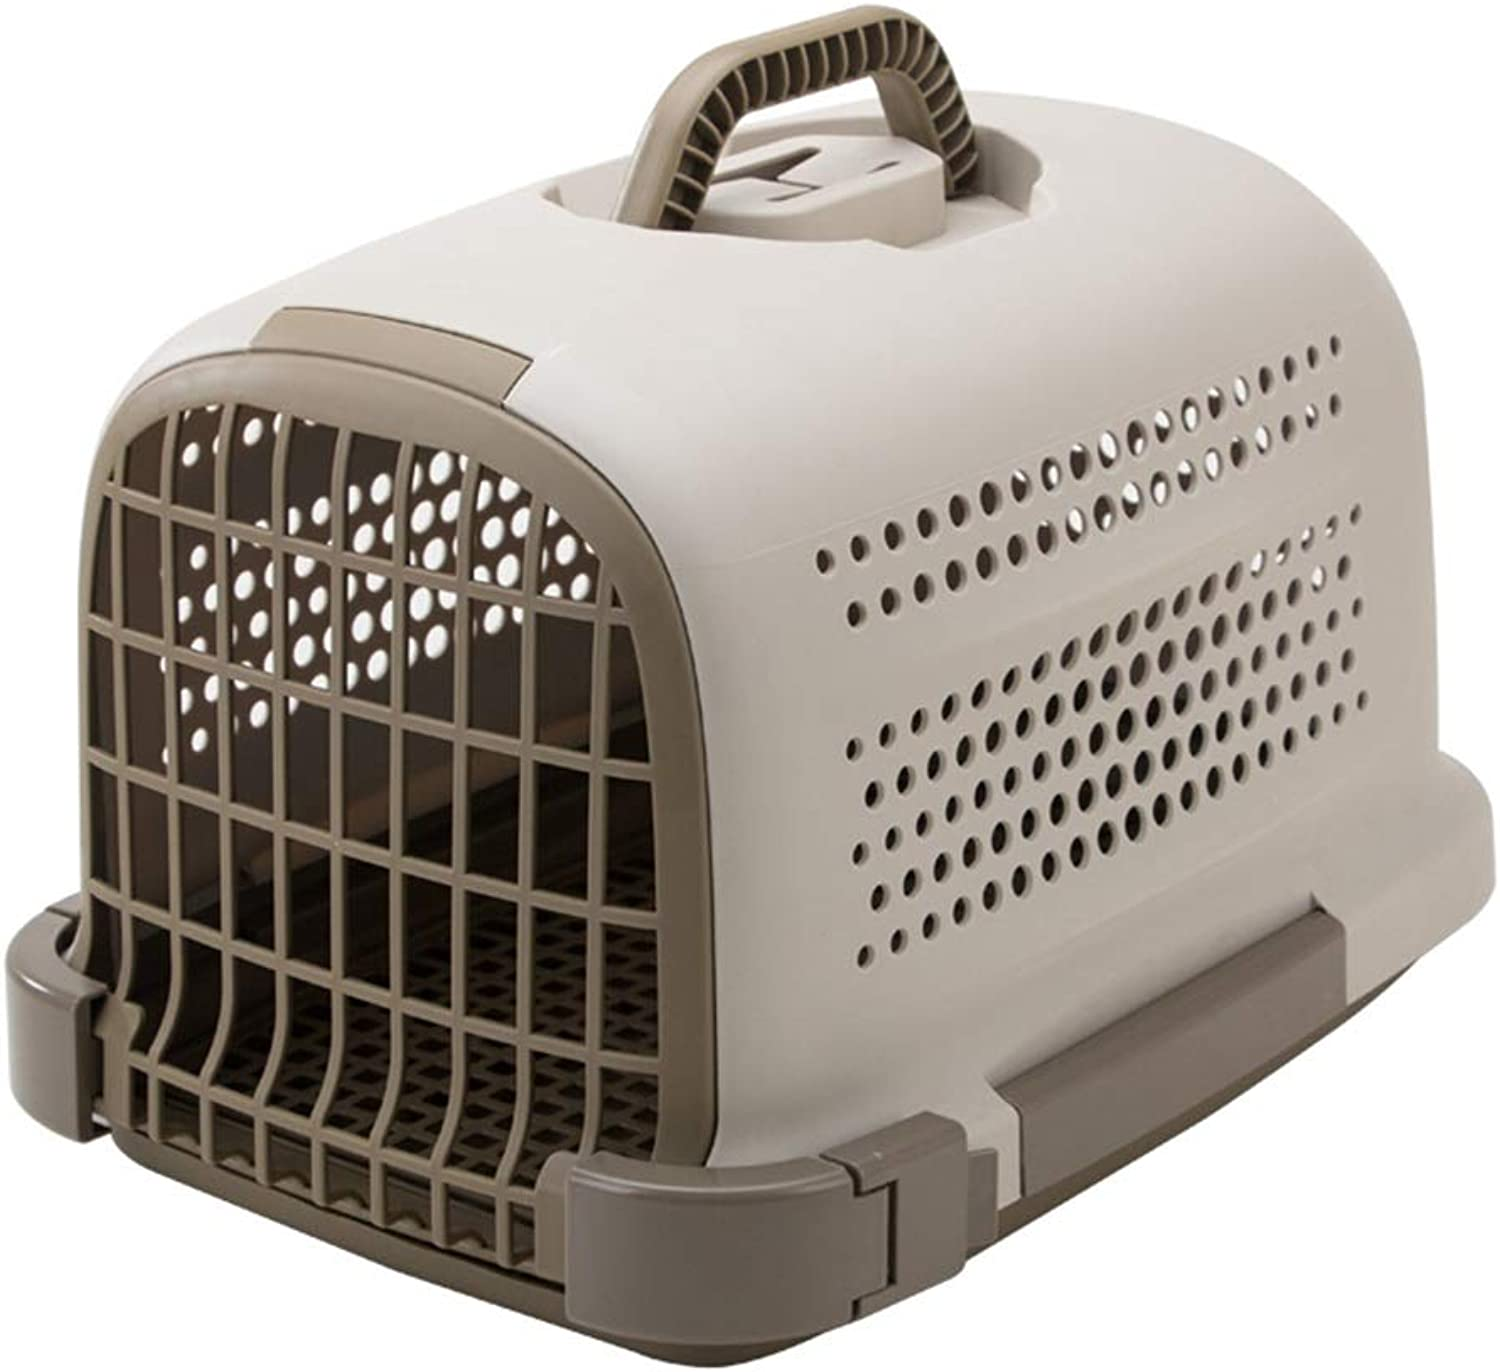 Byx Pet Bag  Air Box Portable Cat Bag Shipping Box Space Bag Dog Cage Pet Cat Cage Cat Cat Teddy Out Supplies Pet Backpack (color   A)